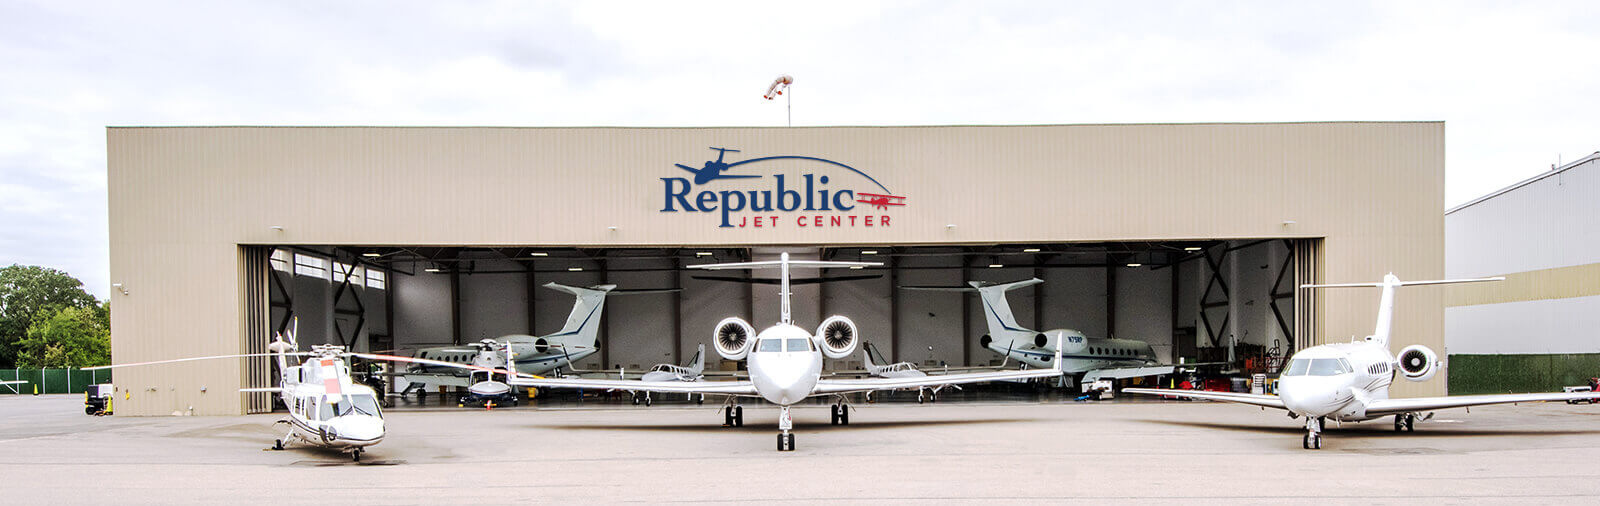 Republic Jet Center Hangar